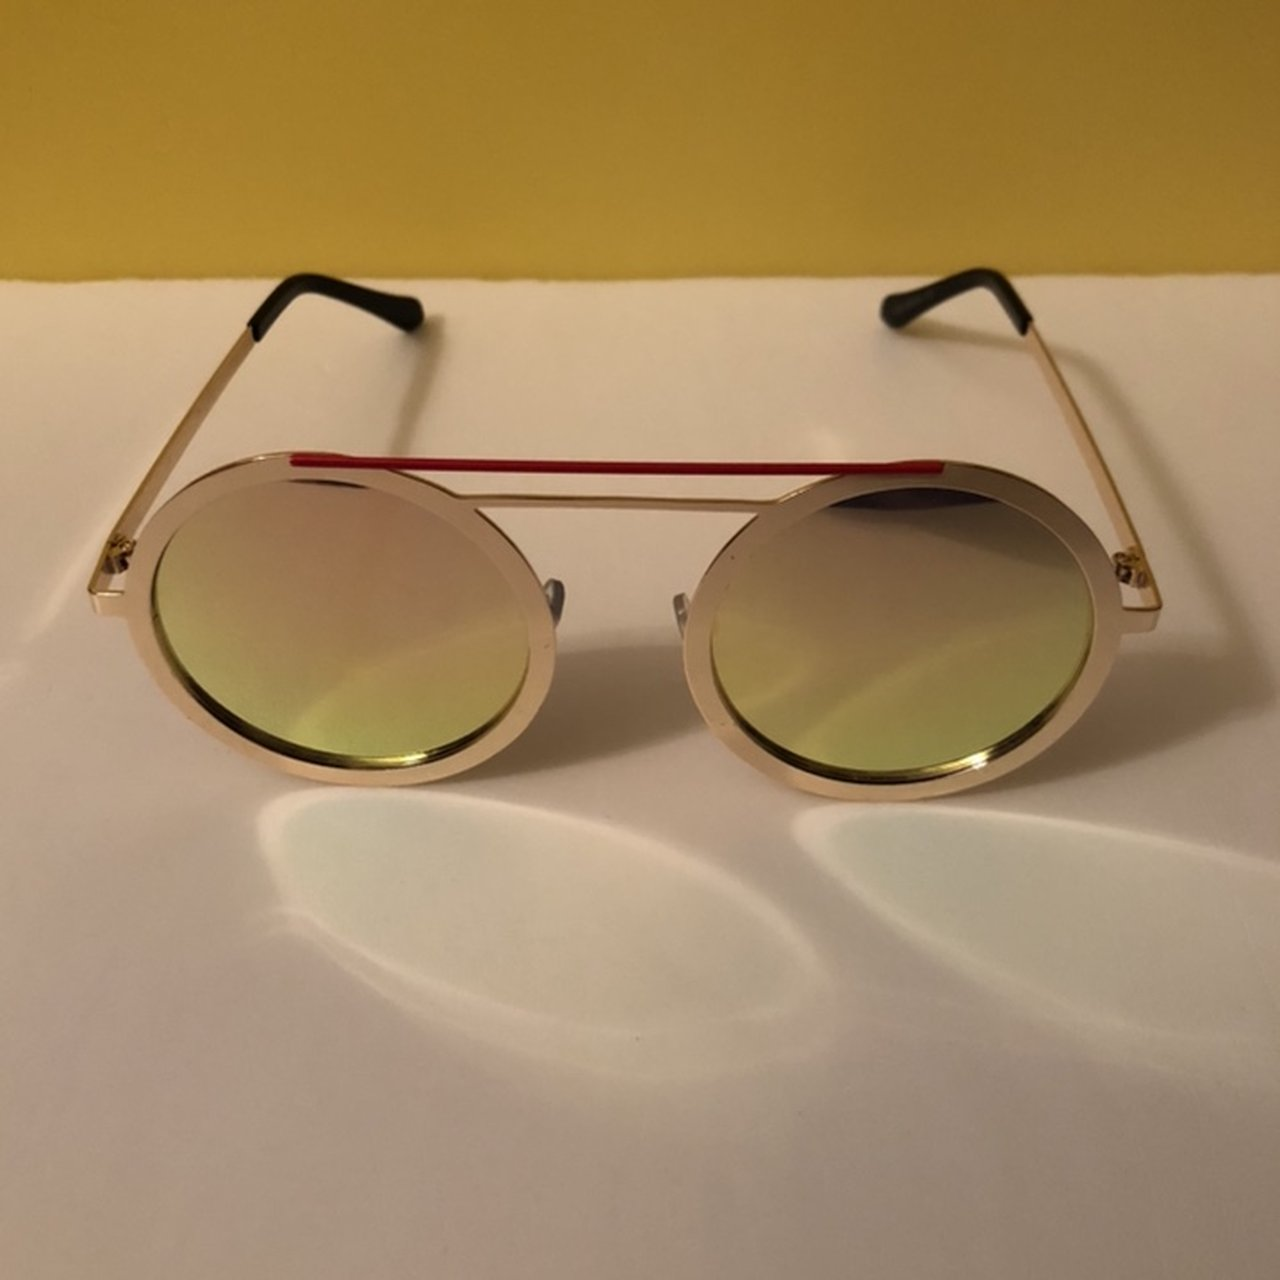 aca9afbbace Round fashion sunglasses Gold metal frame. Pink tinted on - Depop